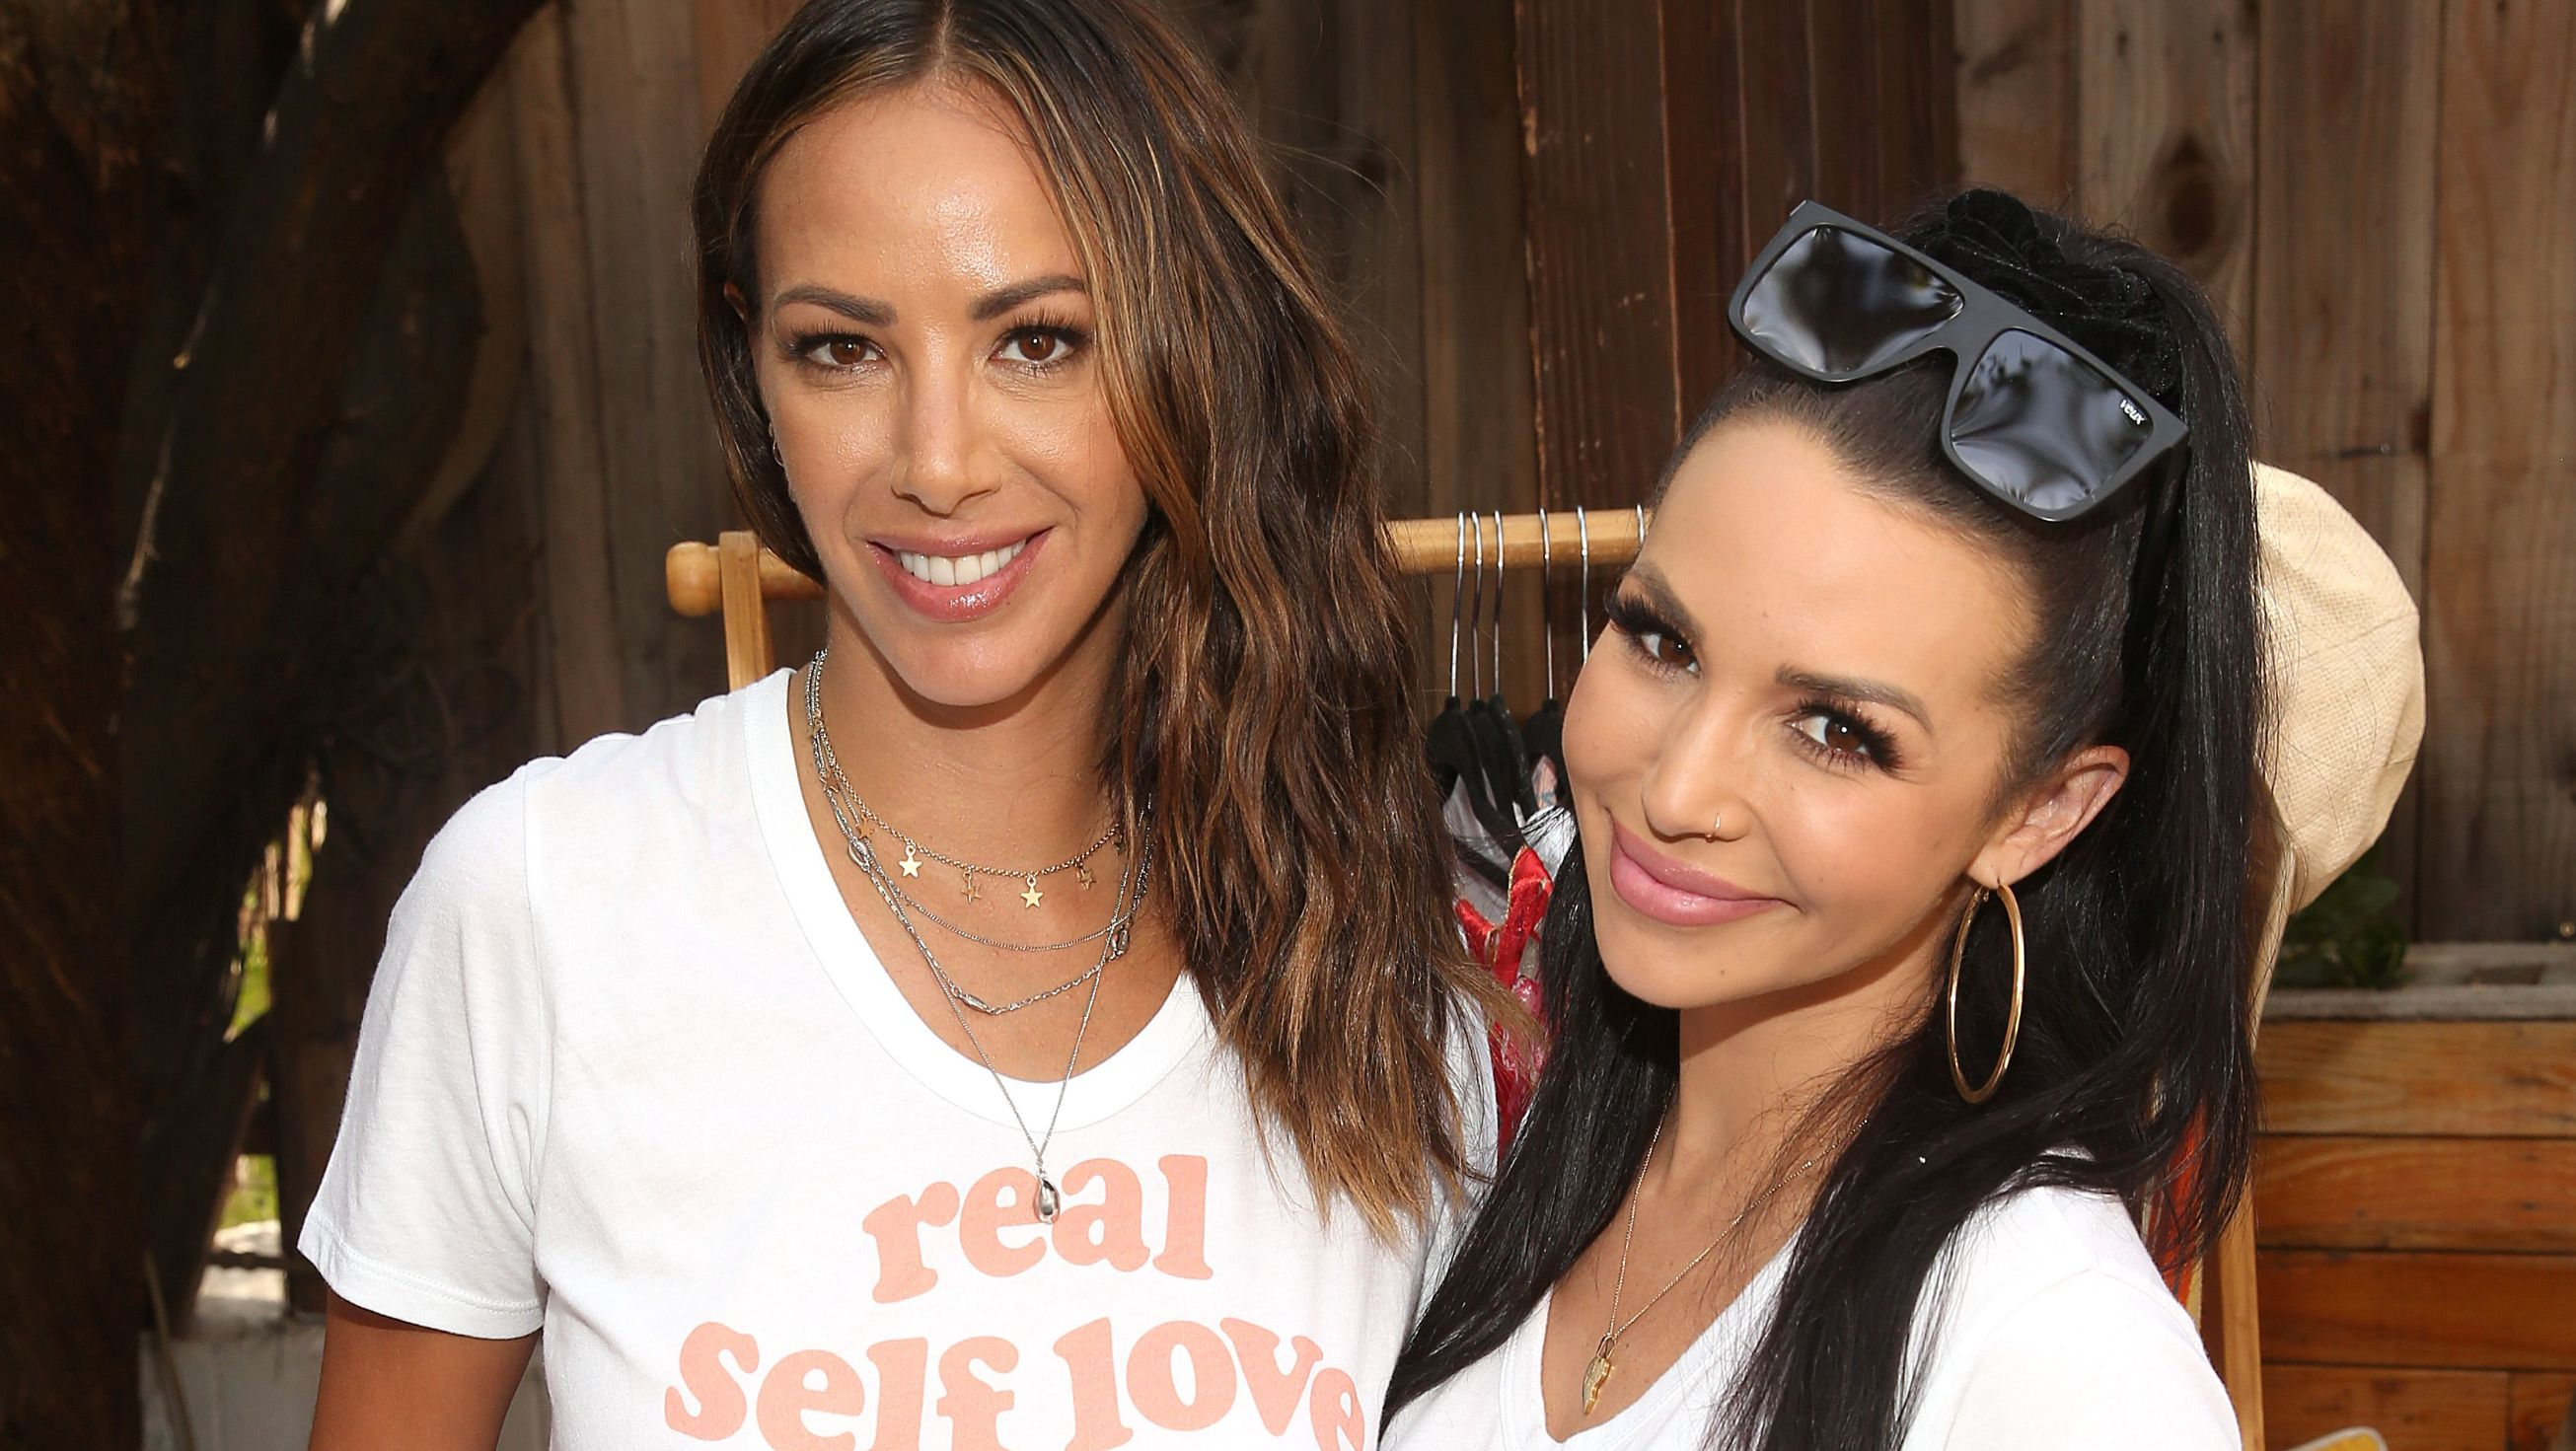 Vanderpump Rules Star Scheana Shay Reveals She S Been In Touch With Kristen Doute After Her Firing